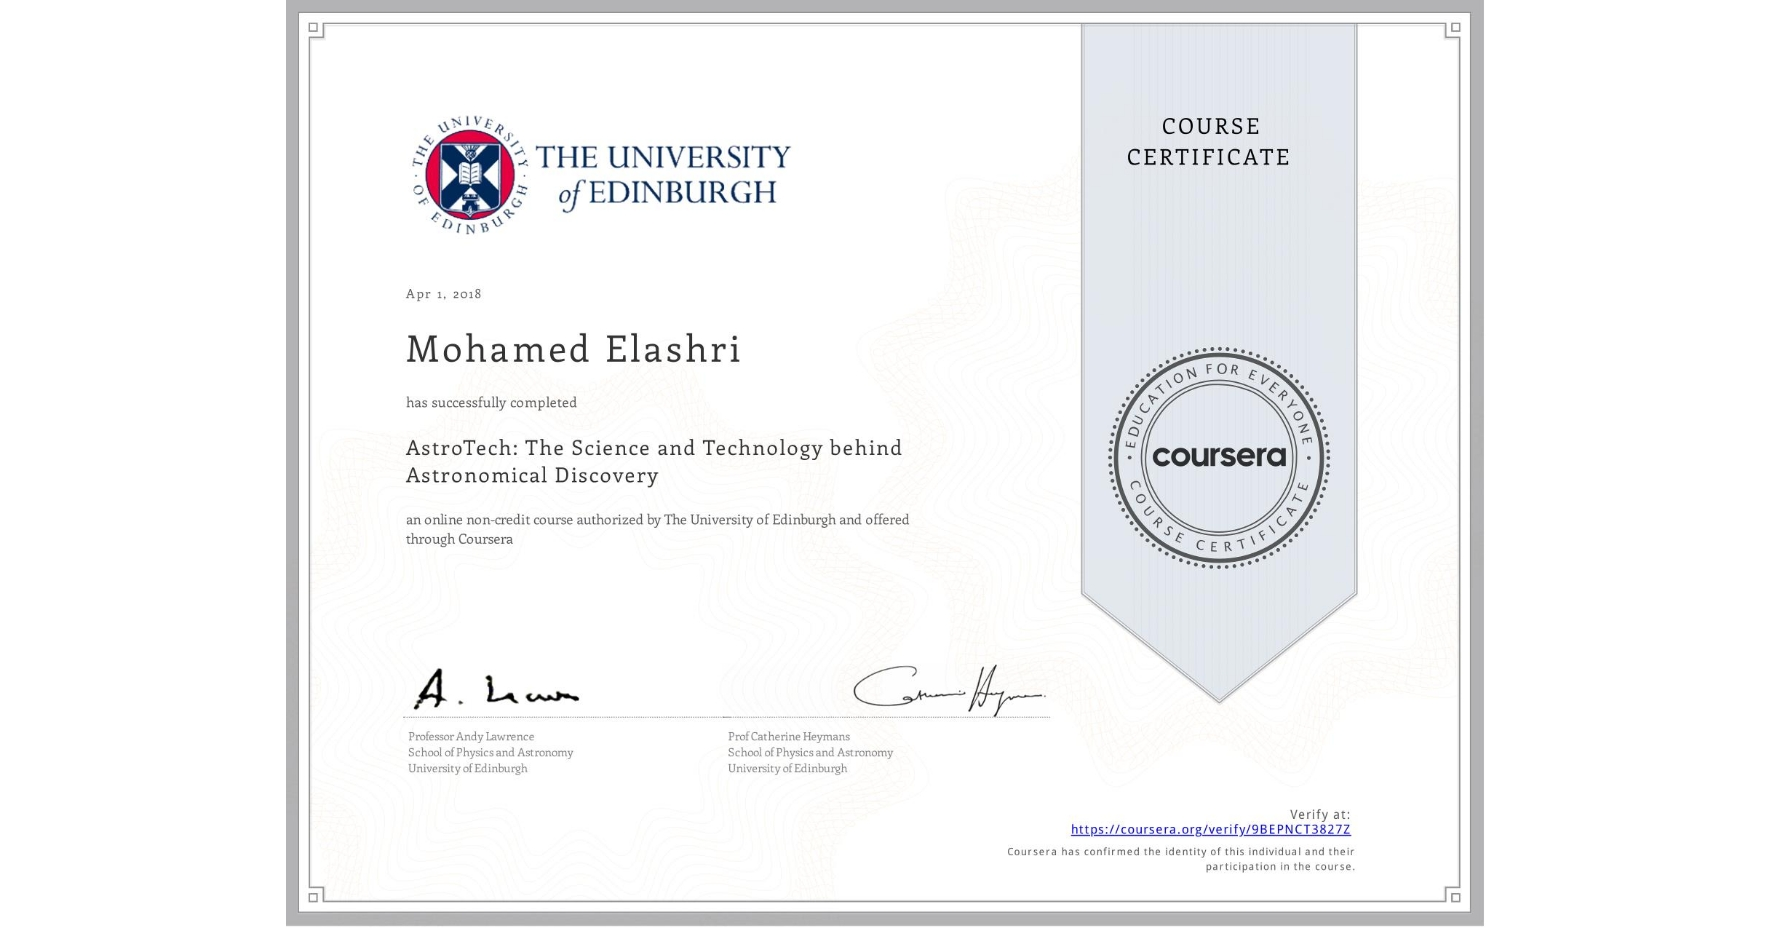 View certificate for Mohamed Elashri, AstroTech: The Science and Technology behind Astronomical Discovery, an online non-credit course authorized by The University of Edinburgh and offered through Coursera